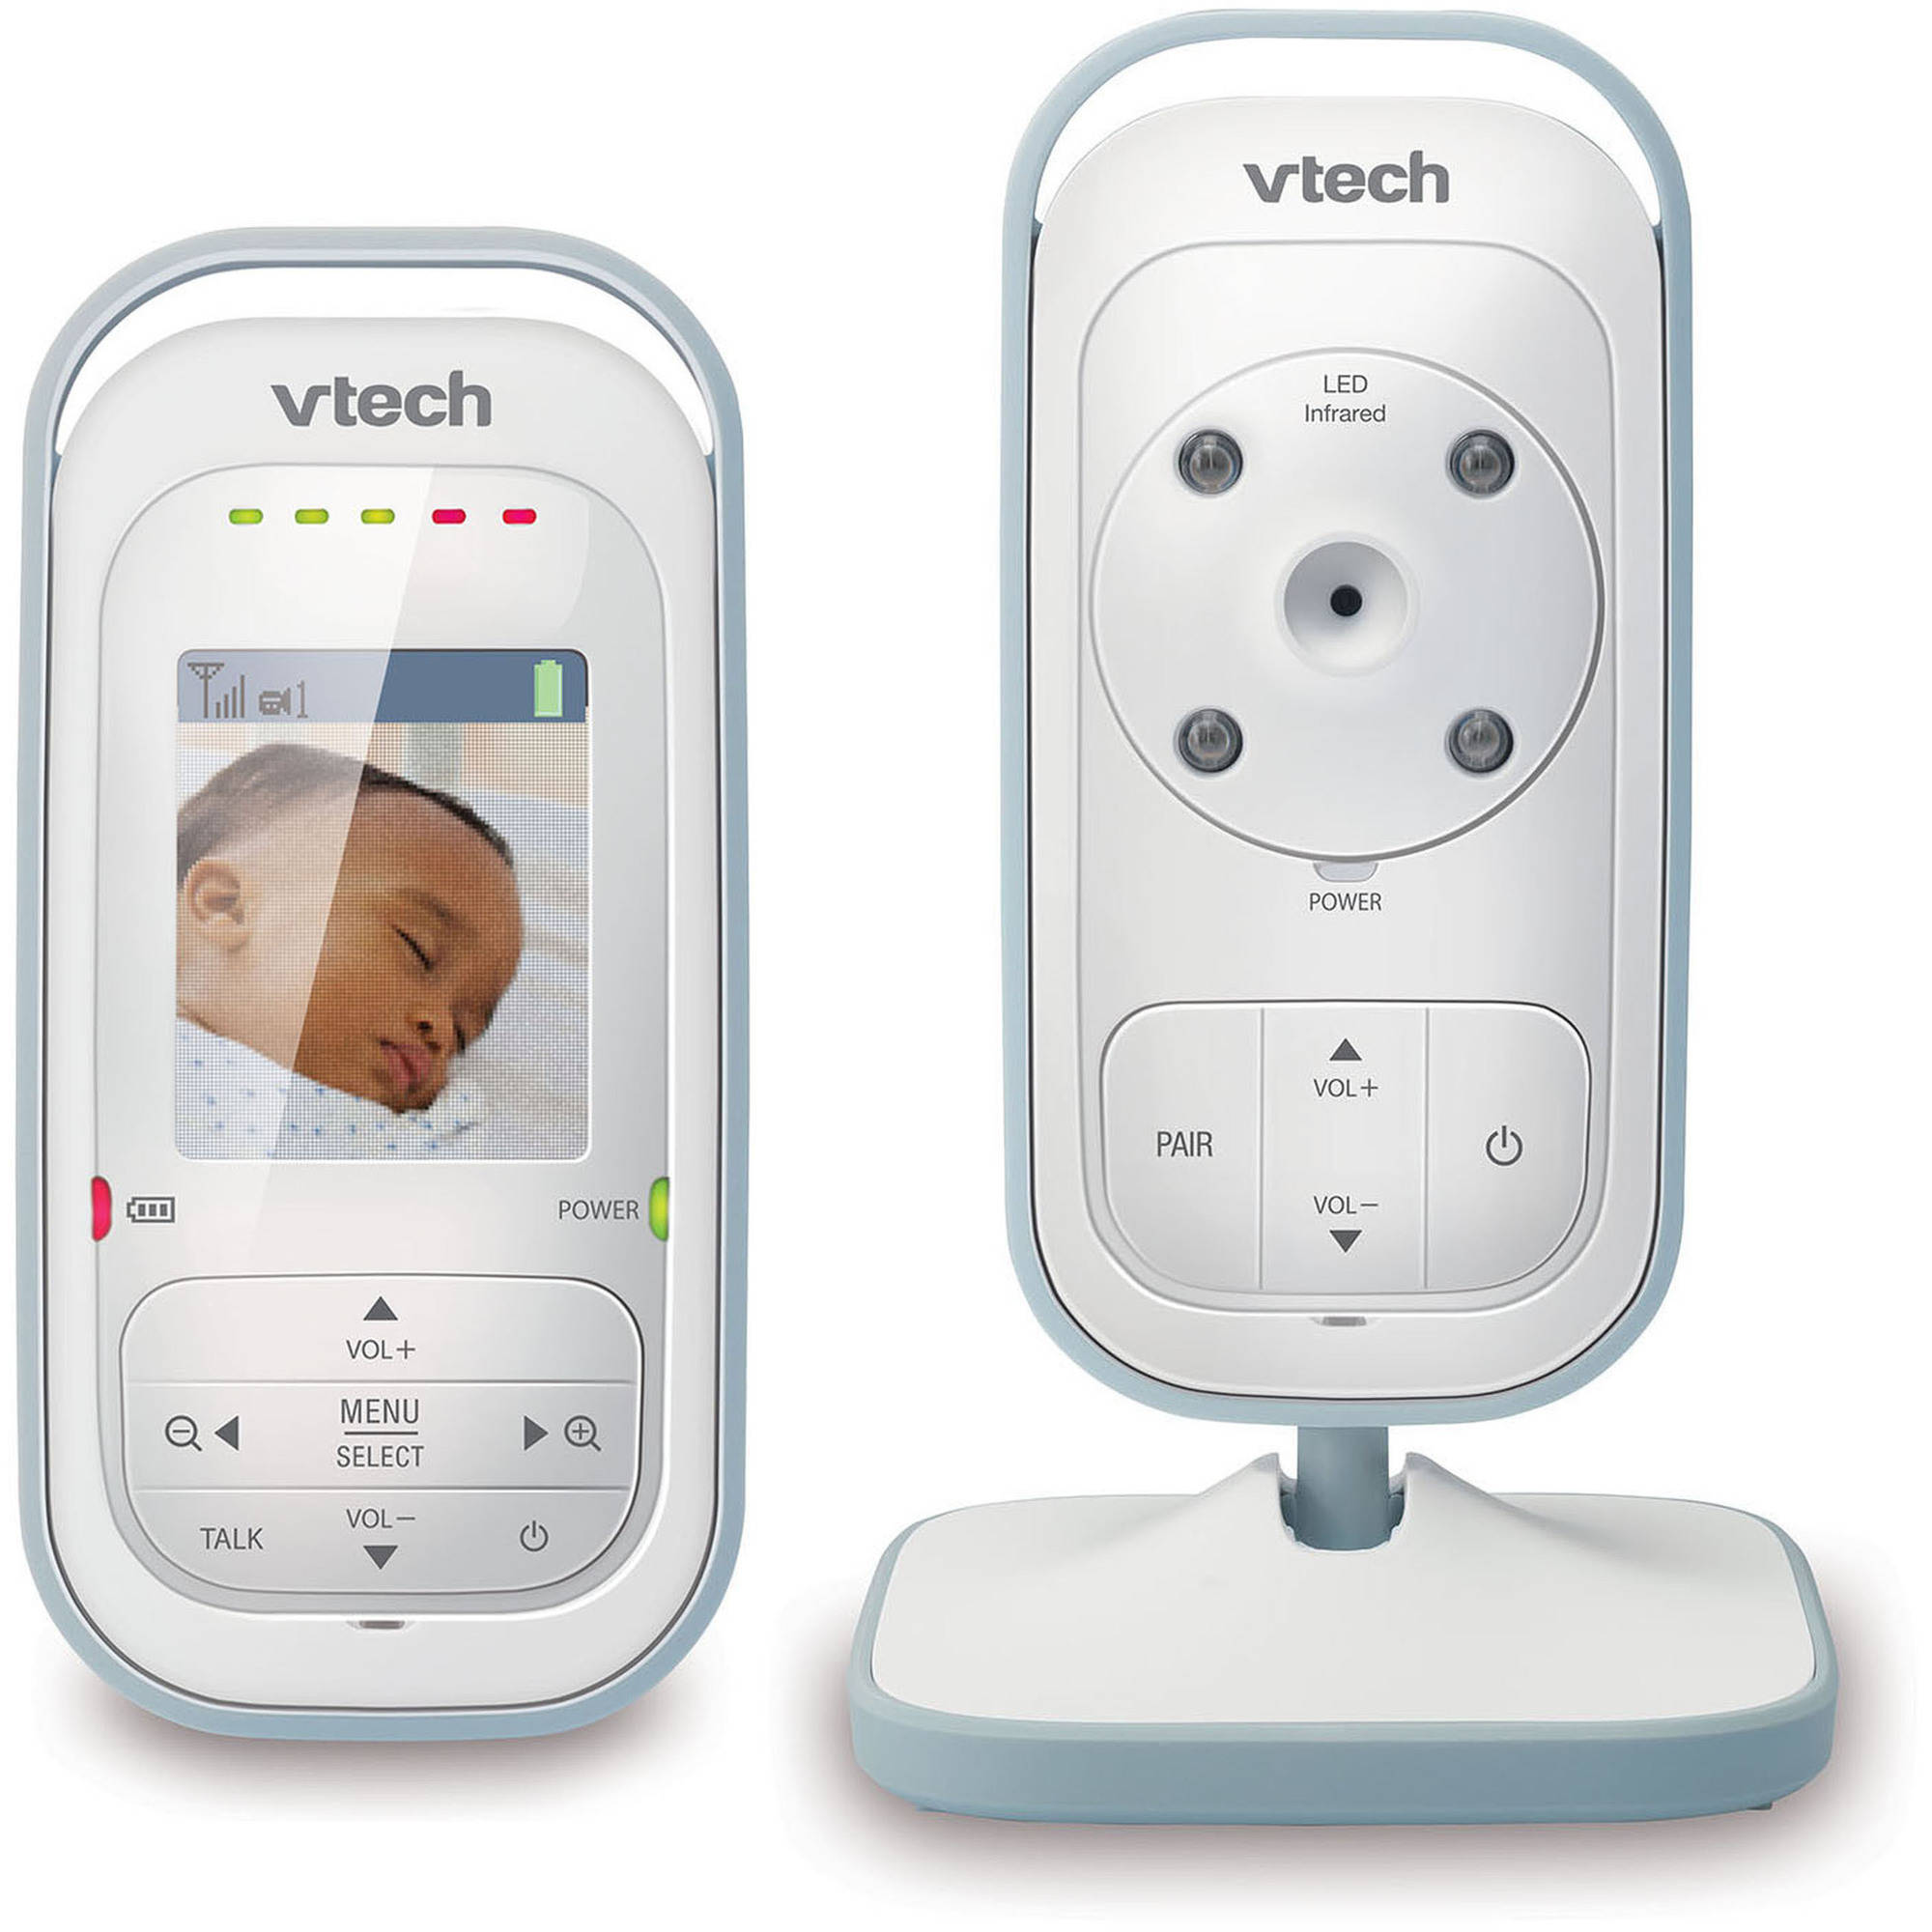 VTech VM311, Expandable Digital Video Baby Monitor with Full-Color and Automatic Night Vision